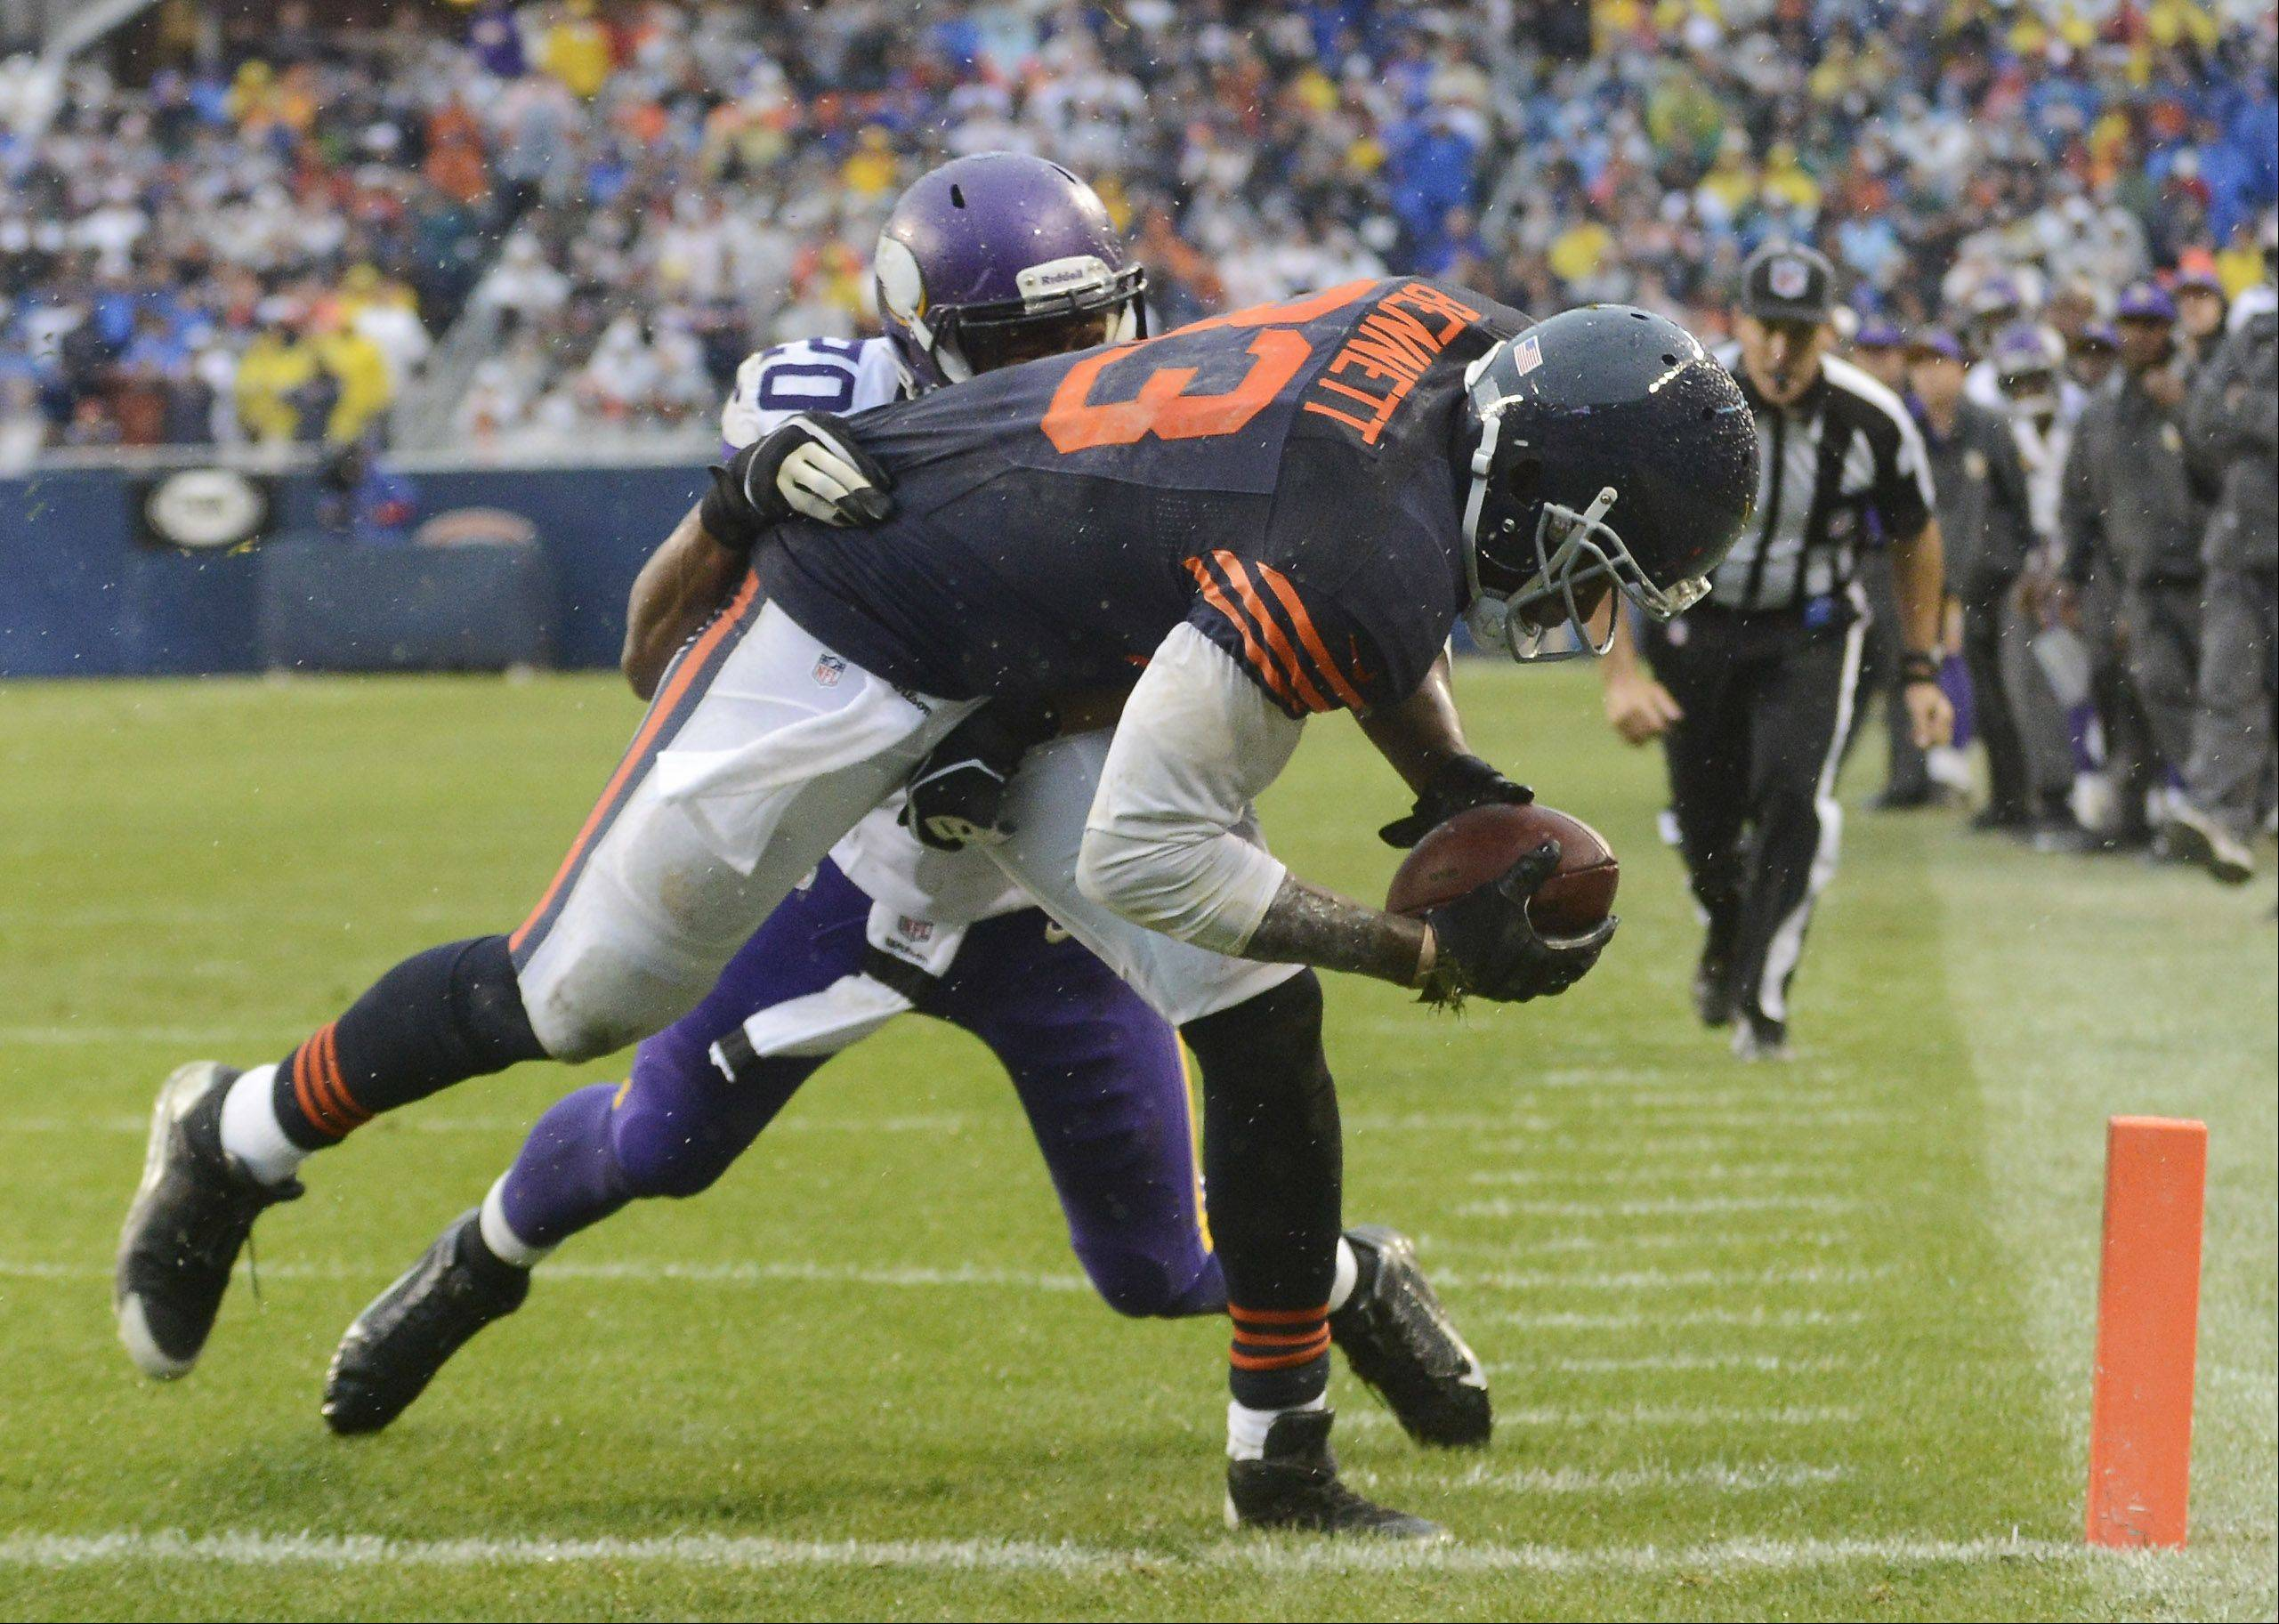 Chicago Bears tight end Martellus Bennett makes a touchdown catch in front of Minnesota Vikings cornerback Chris Cook with 10 seconds left during Sunday's game at Soldier Field.